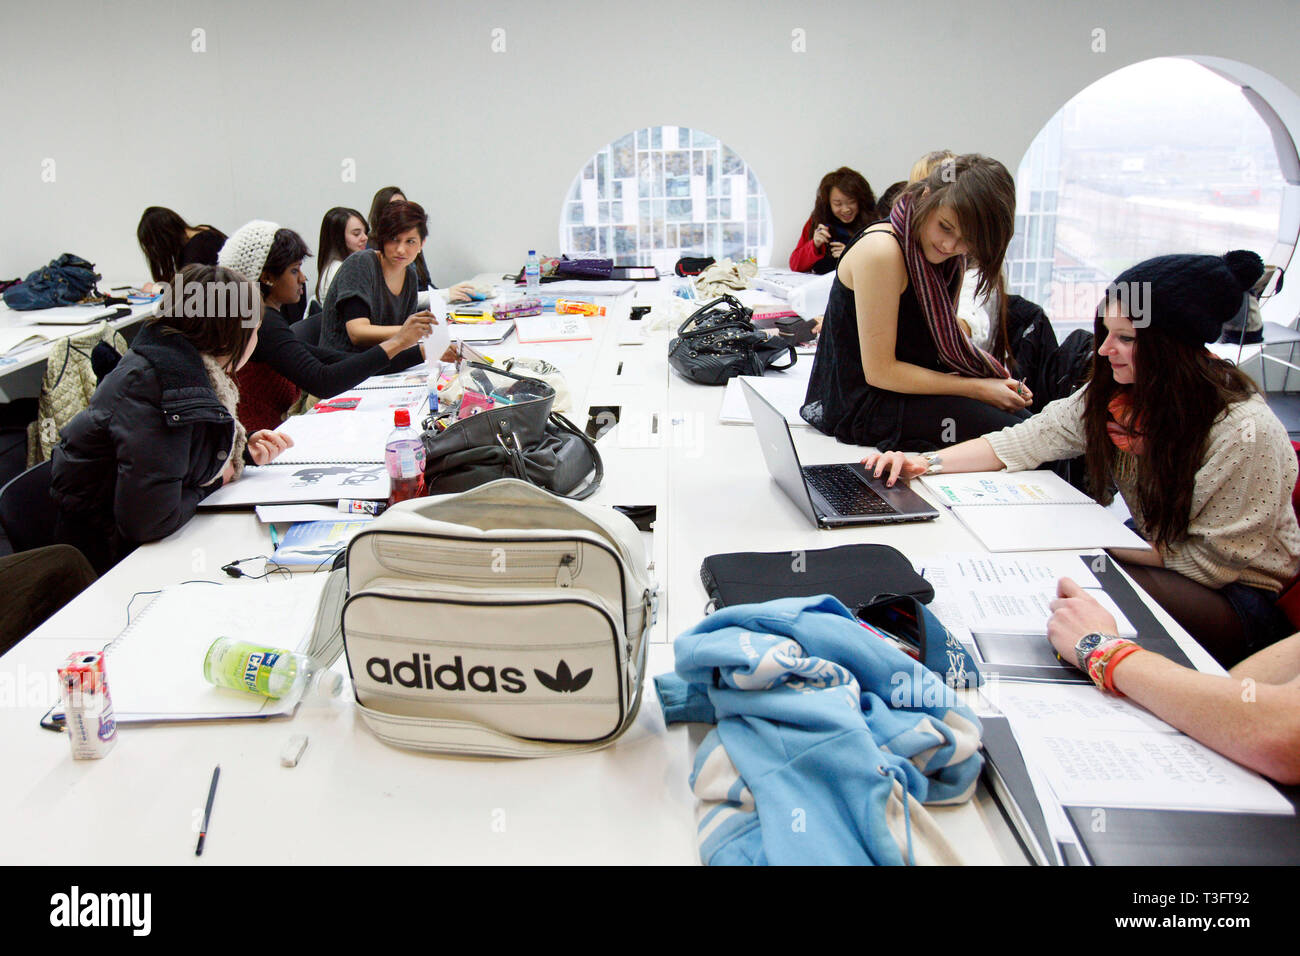 Students Studying For A Foundation Diploma In Art And Design Having A Crit Ravensbourne Specialist Higher Education College London 06 12 2010 Stock Photo Alamy